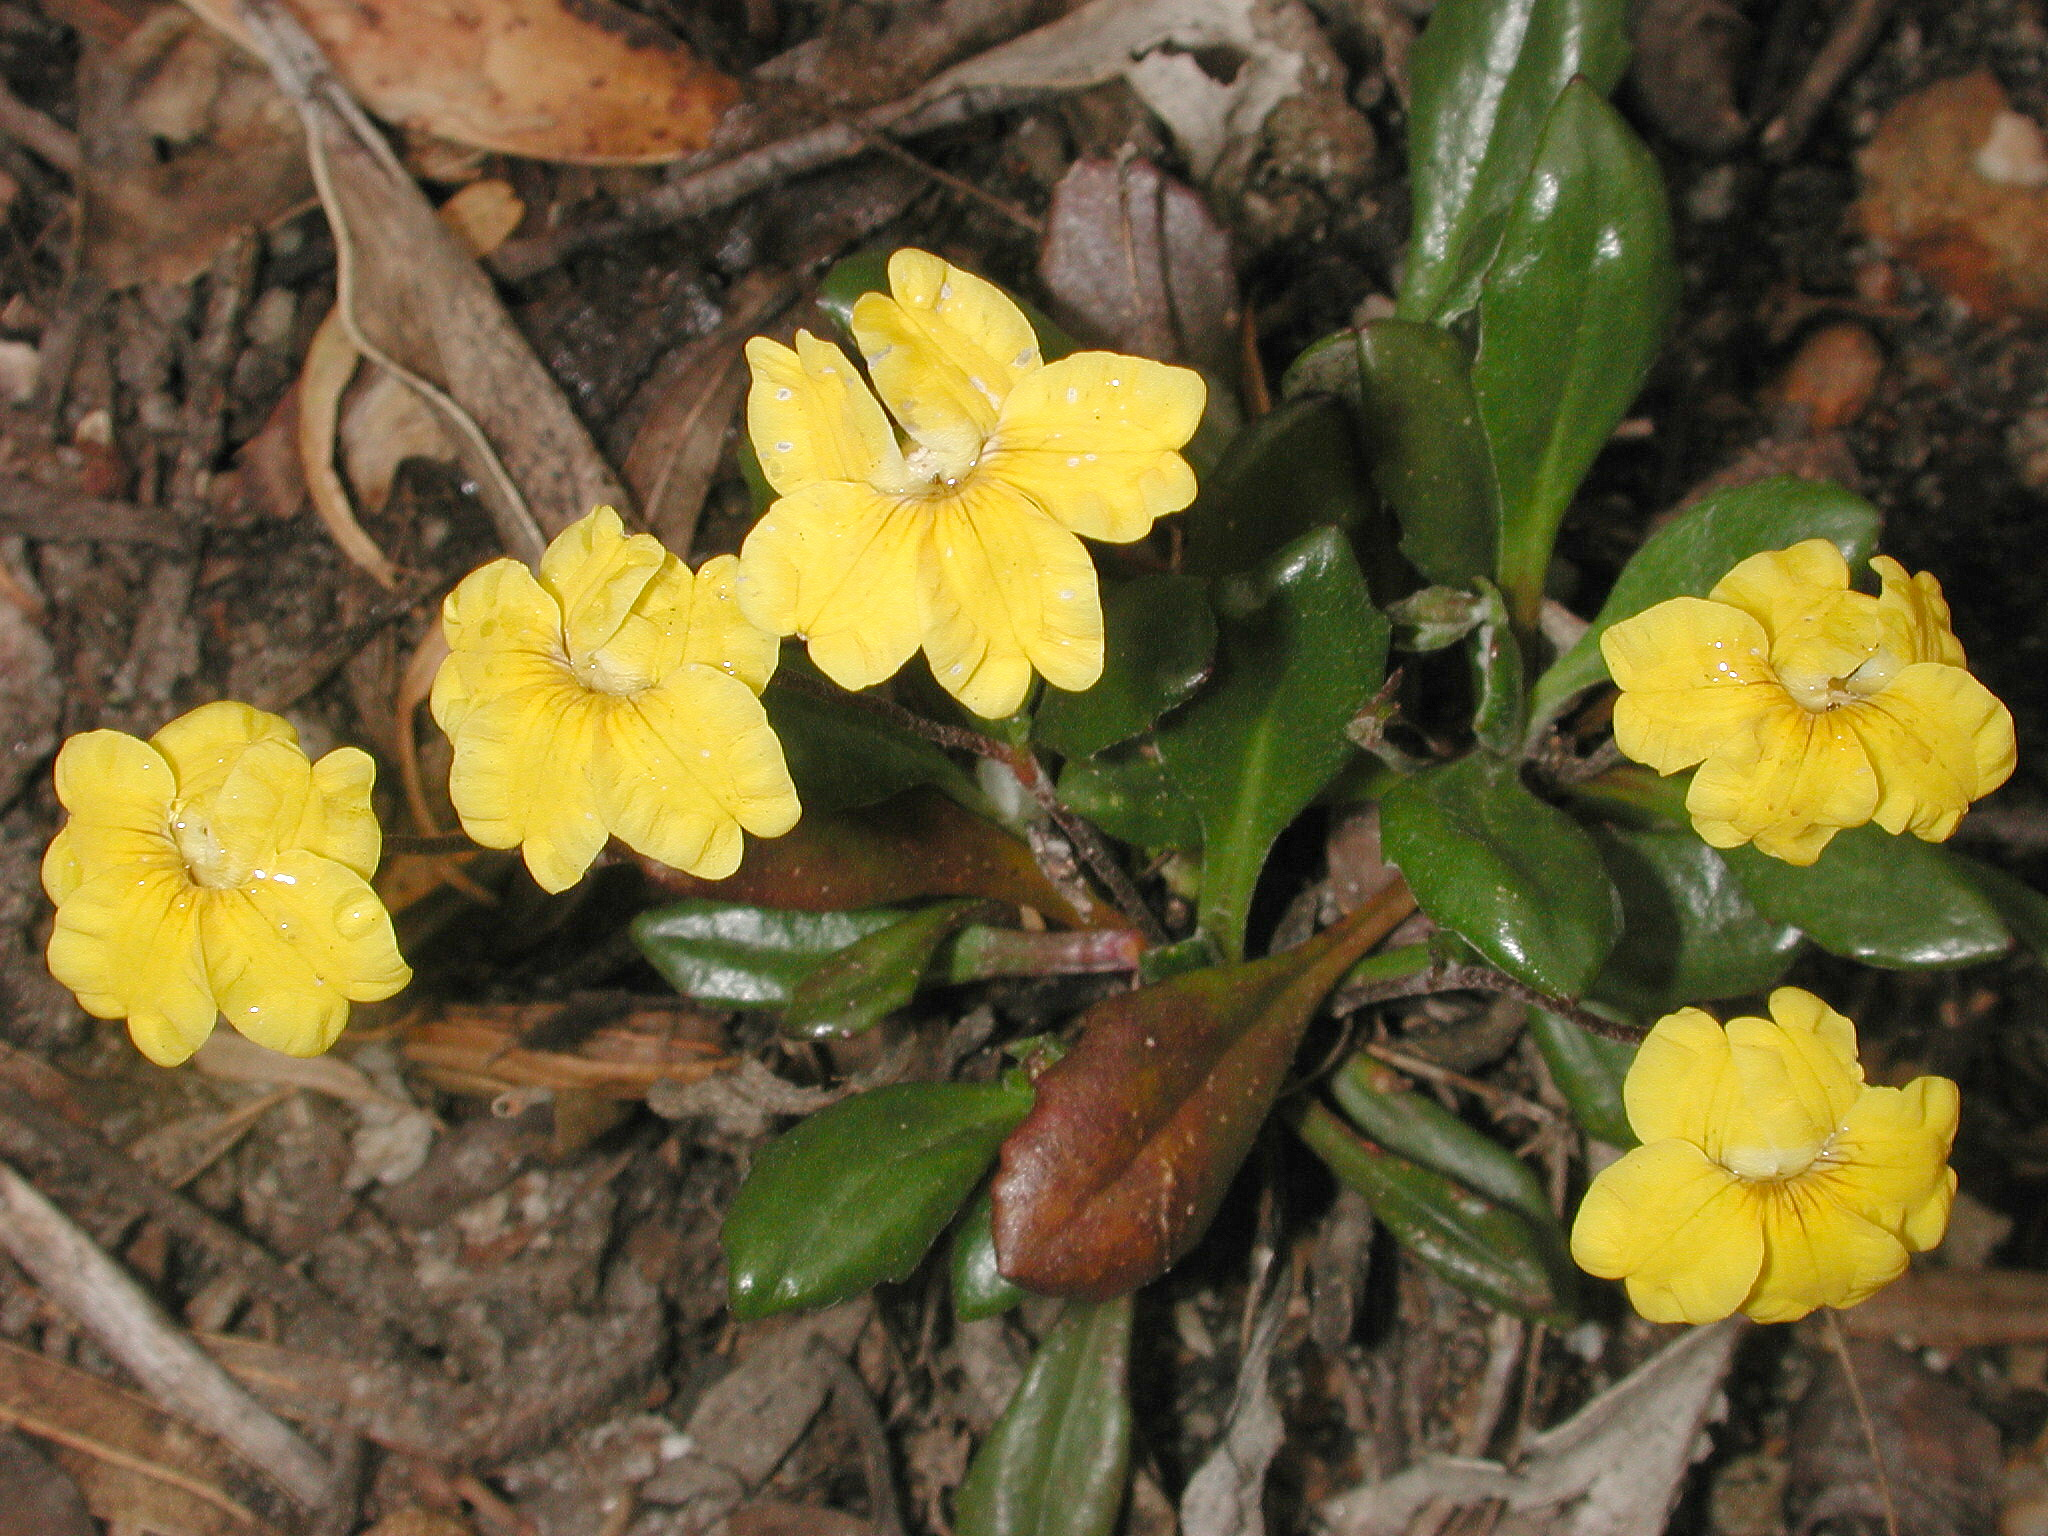 Goodenia blackiana